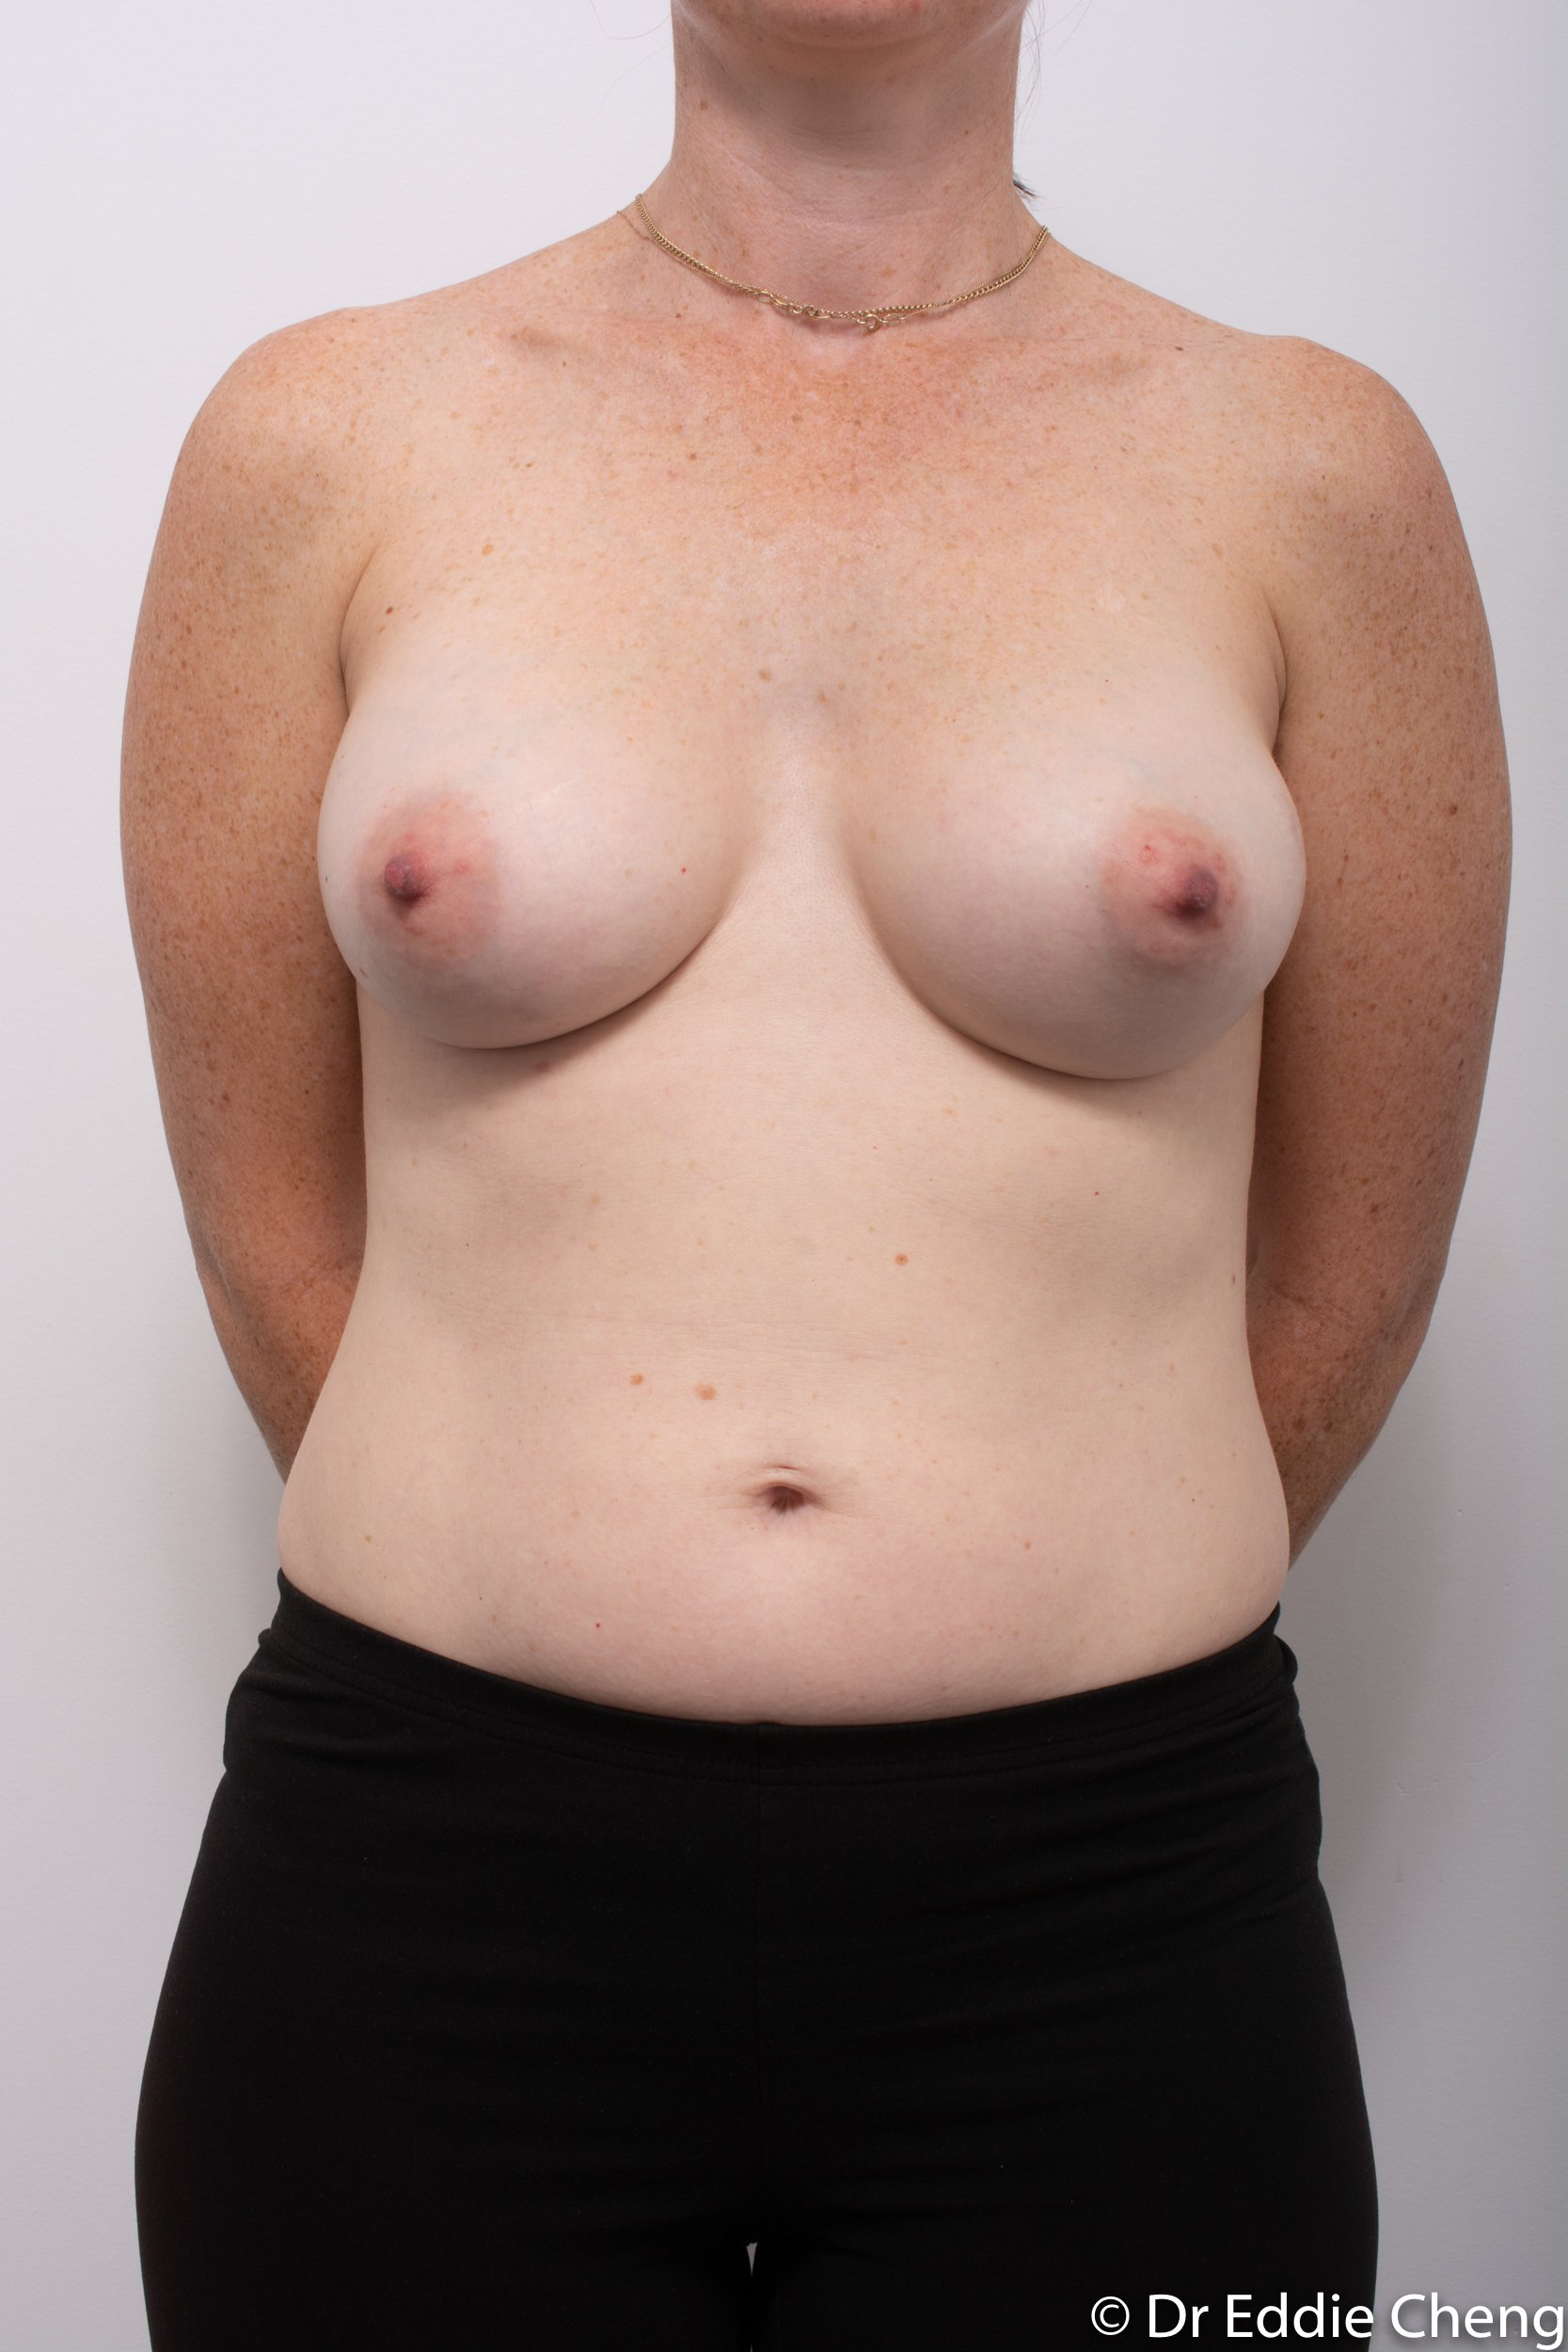 removal of implants or explant surgery dr eddie cheng brisbane-3